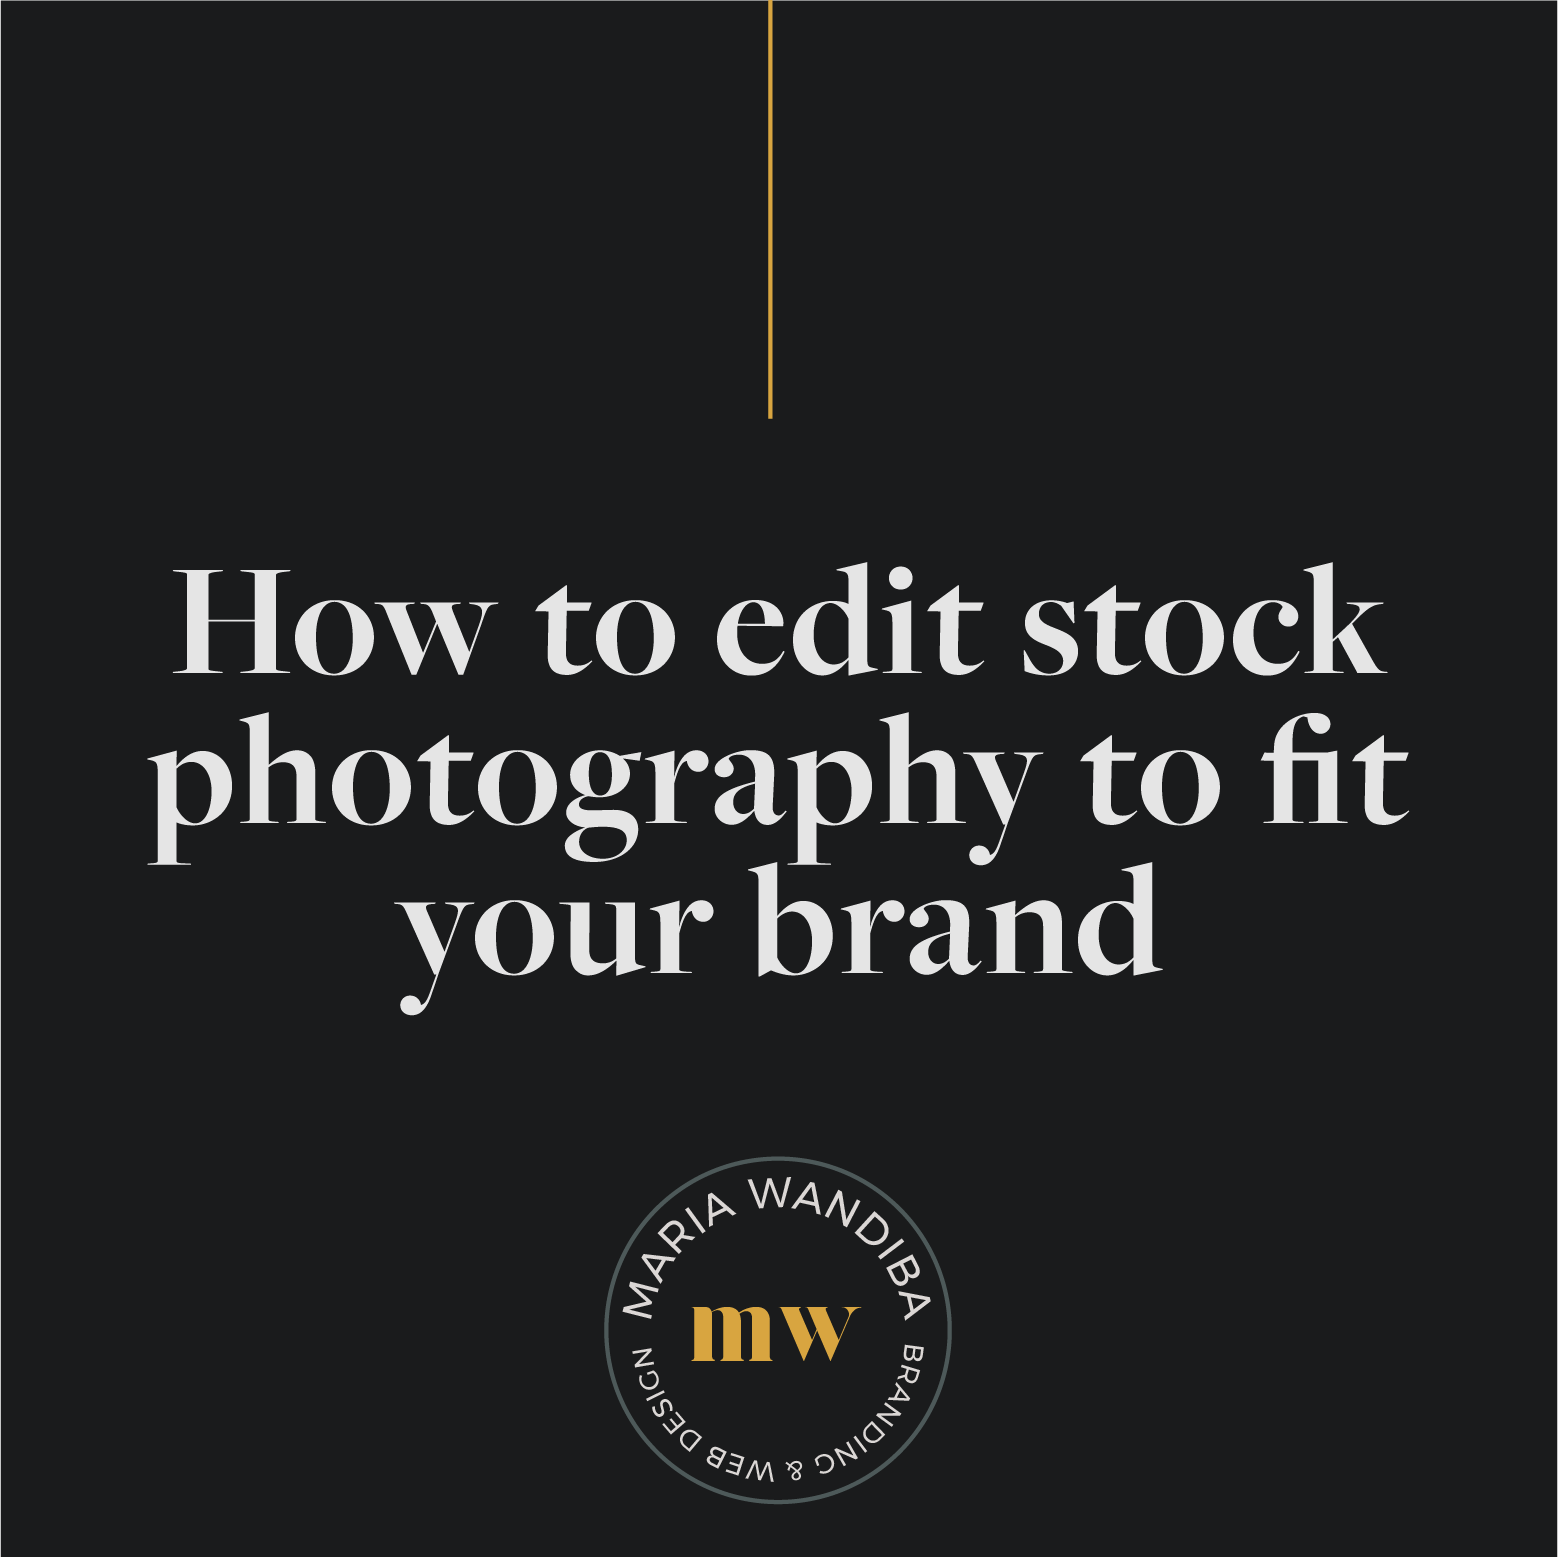 How to edit stock photography to fit your brand